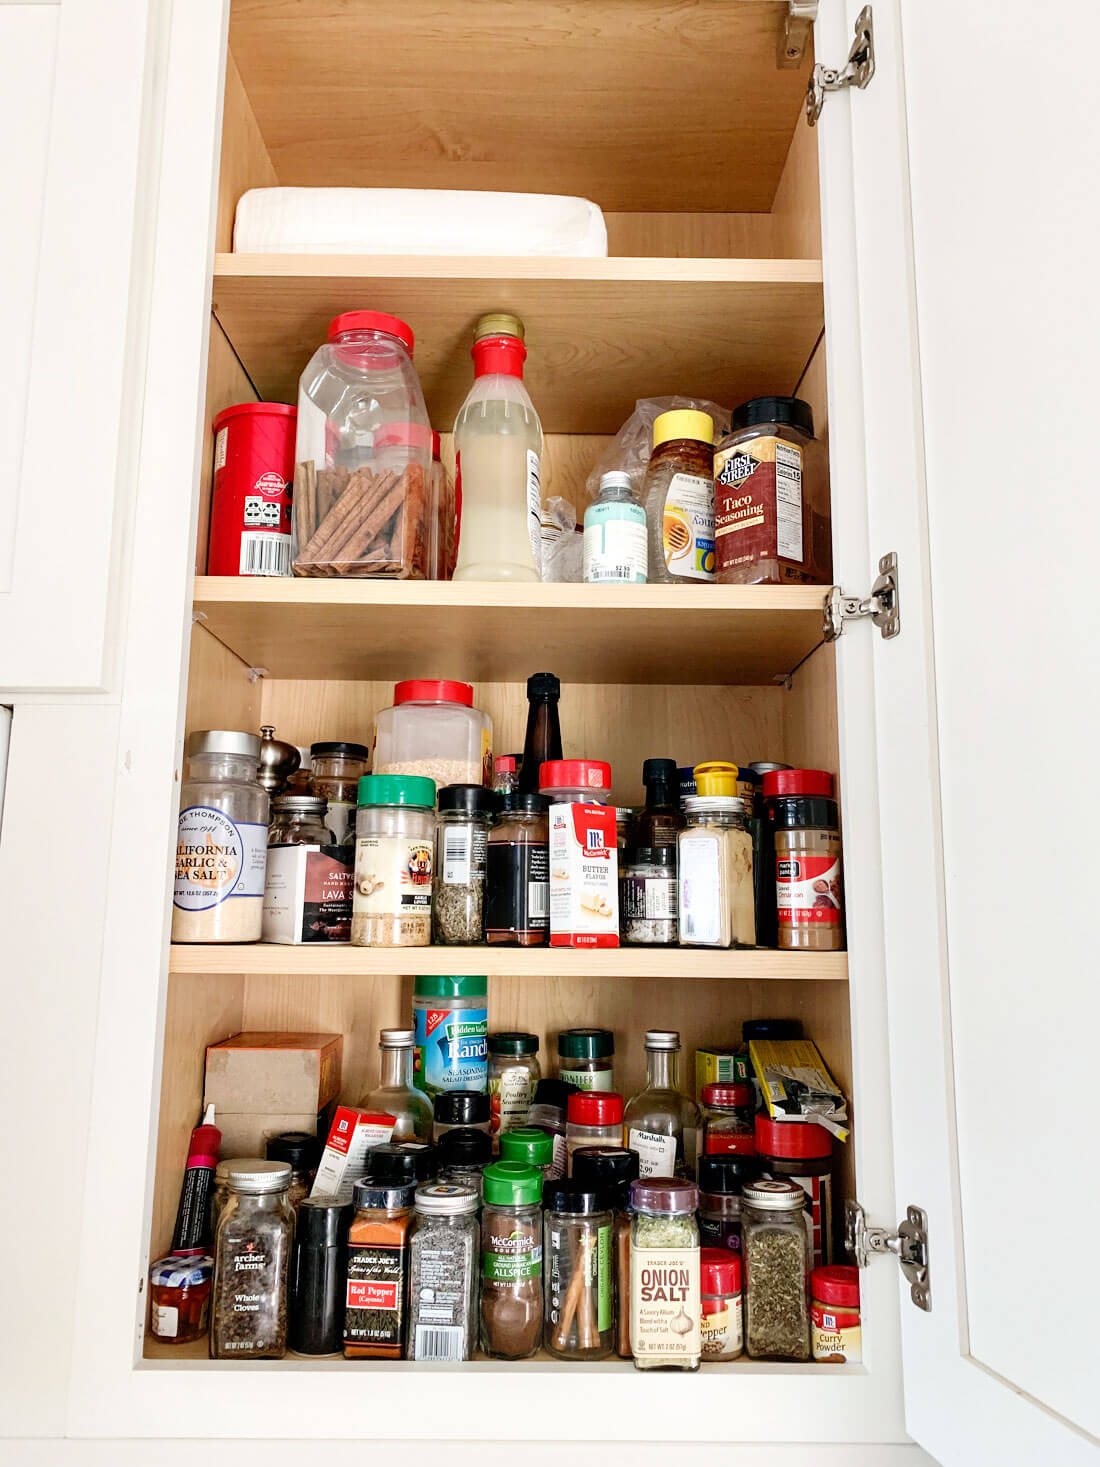 How to organize your spice rack - the before!